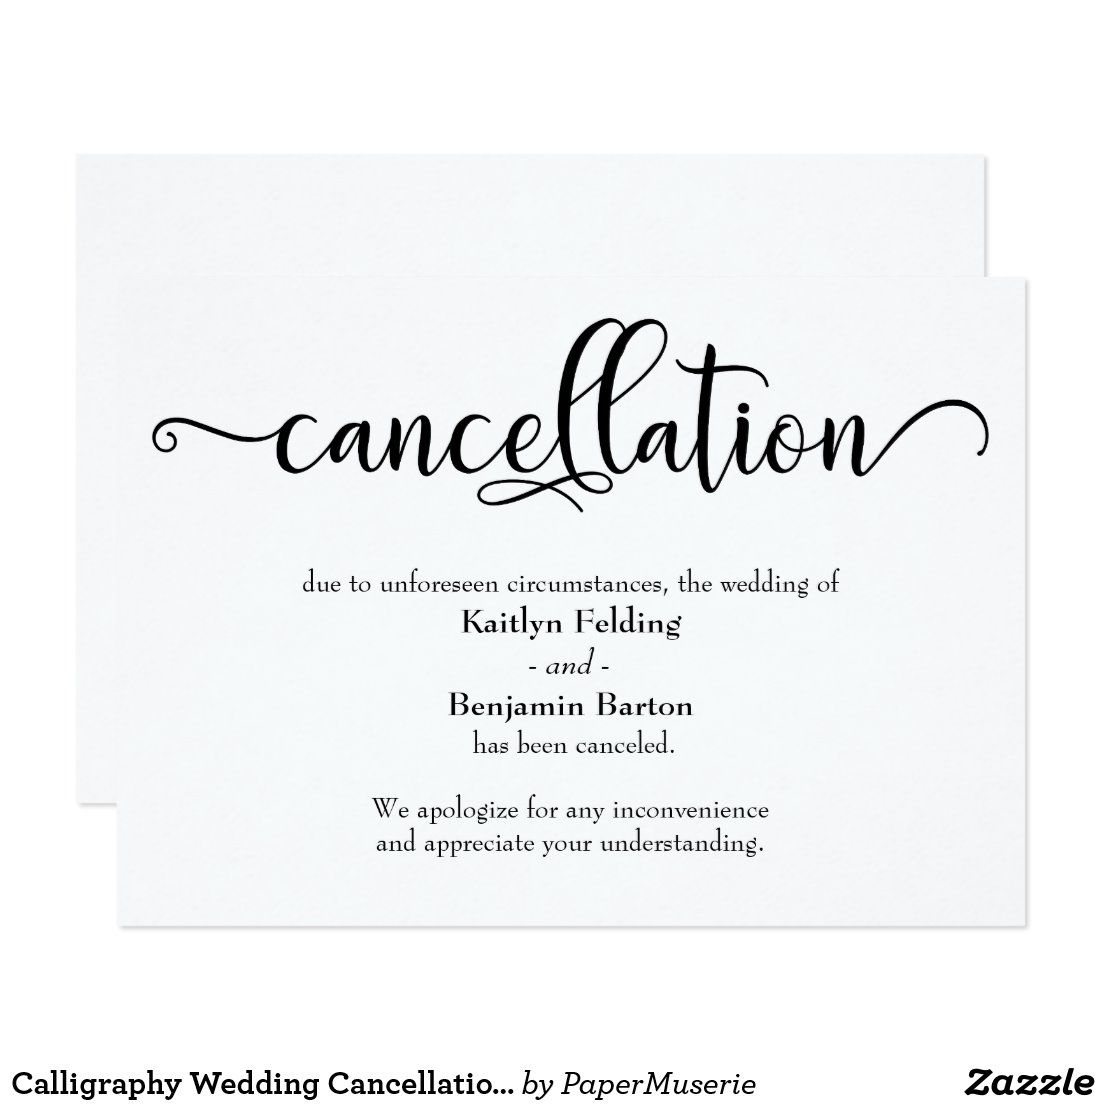 Calligraphy wedding cancellation announcement card